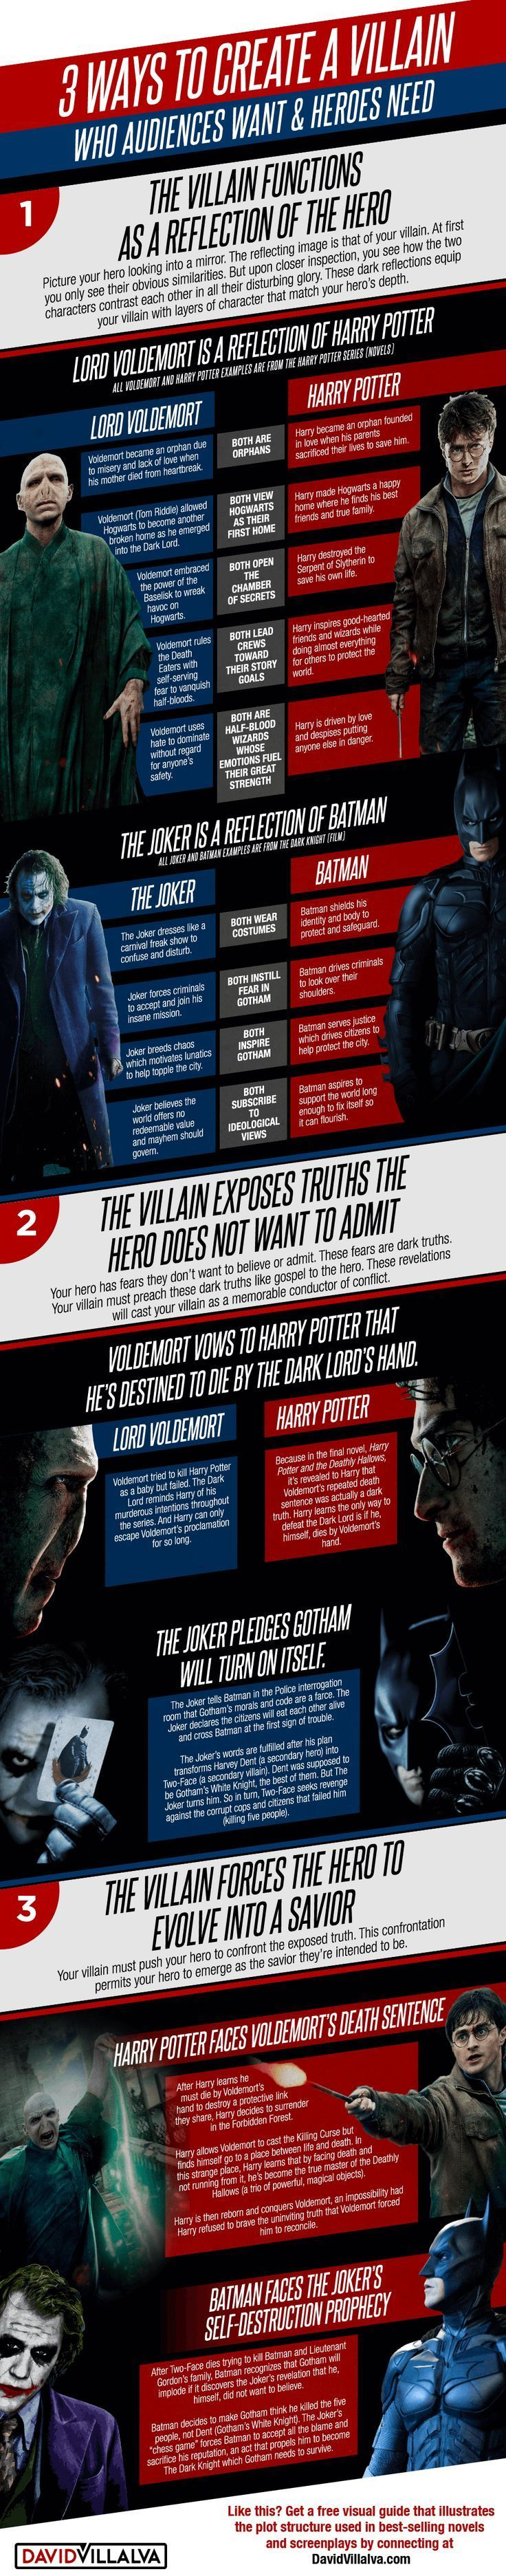 How to create a villain - great tips for screenwriters!